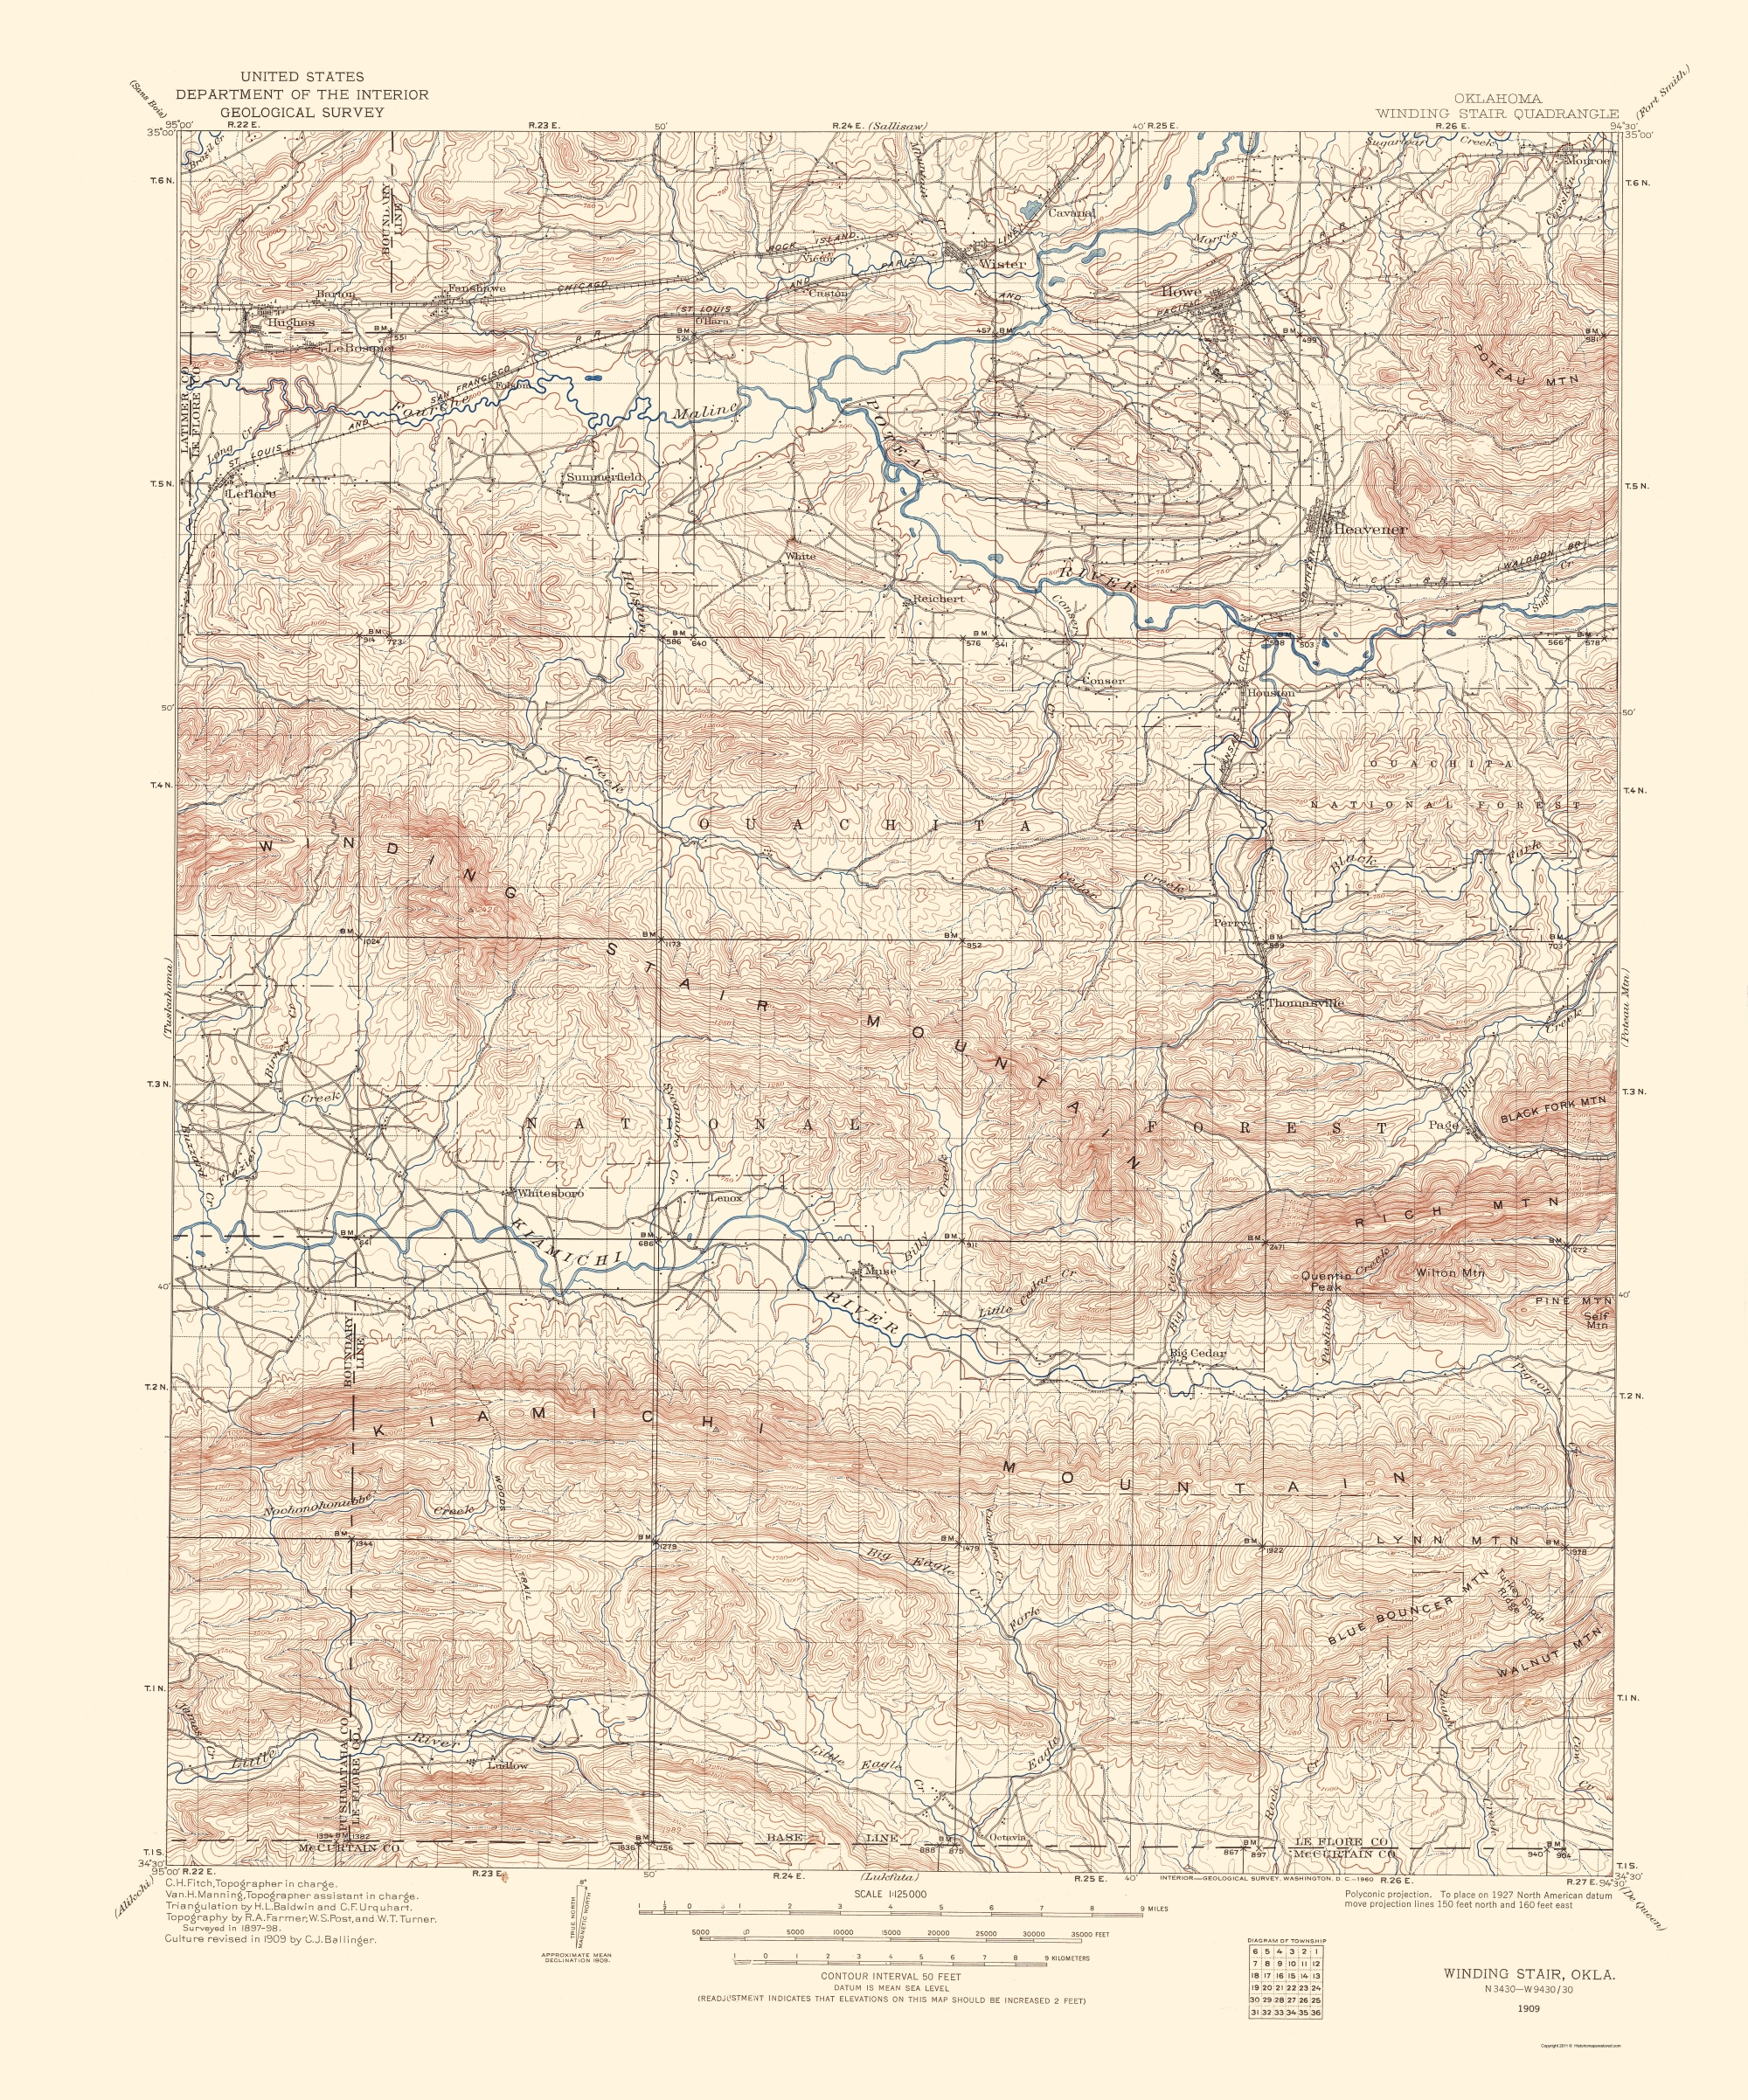 Topographical Map Print - Winding Stair Oklahoma - USGS 1960 - 23 x 27.63